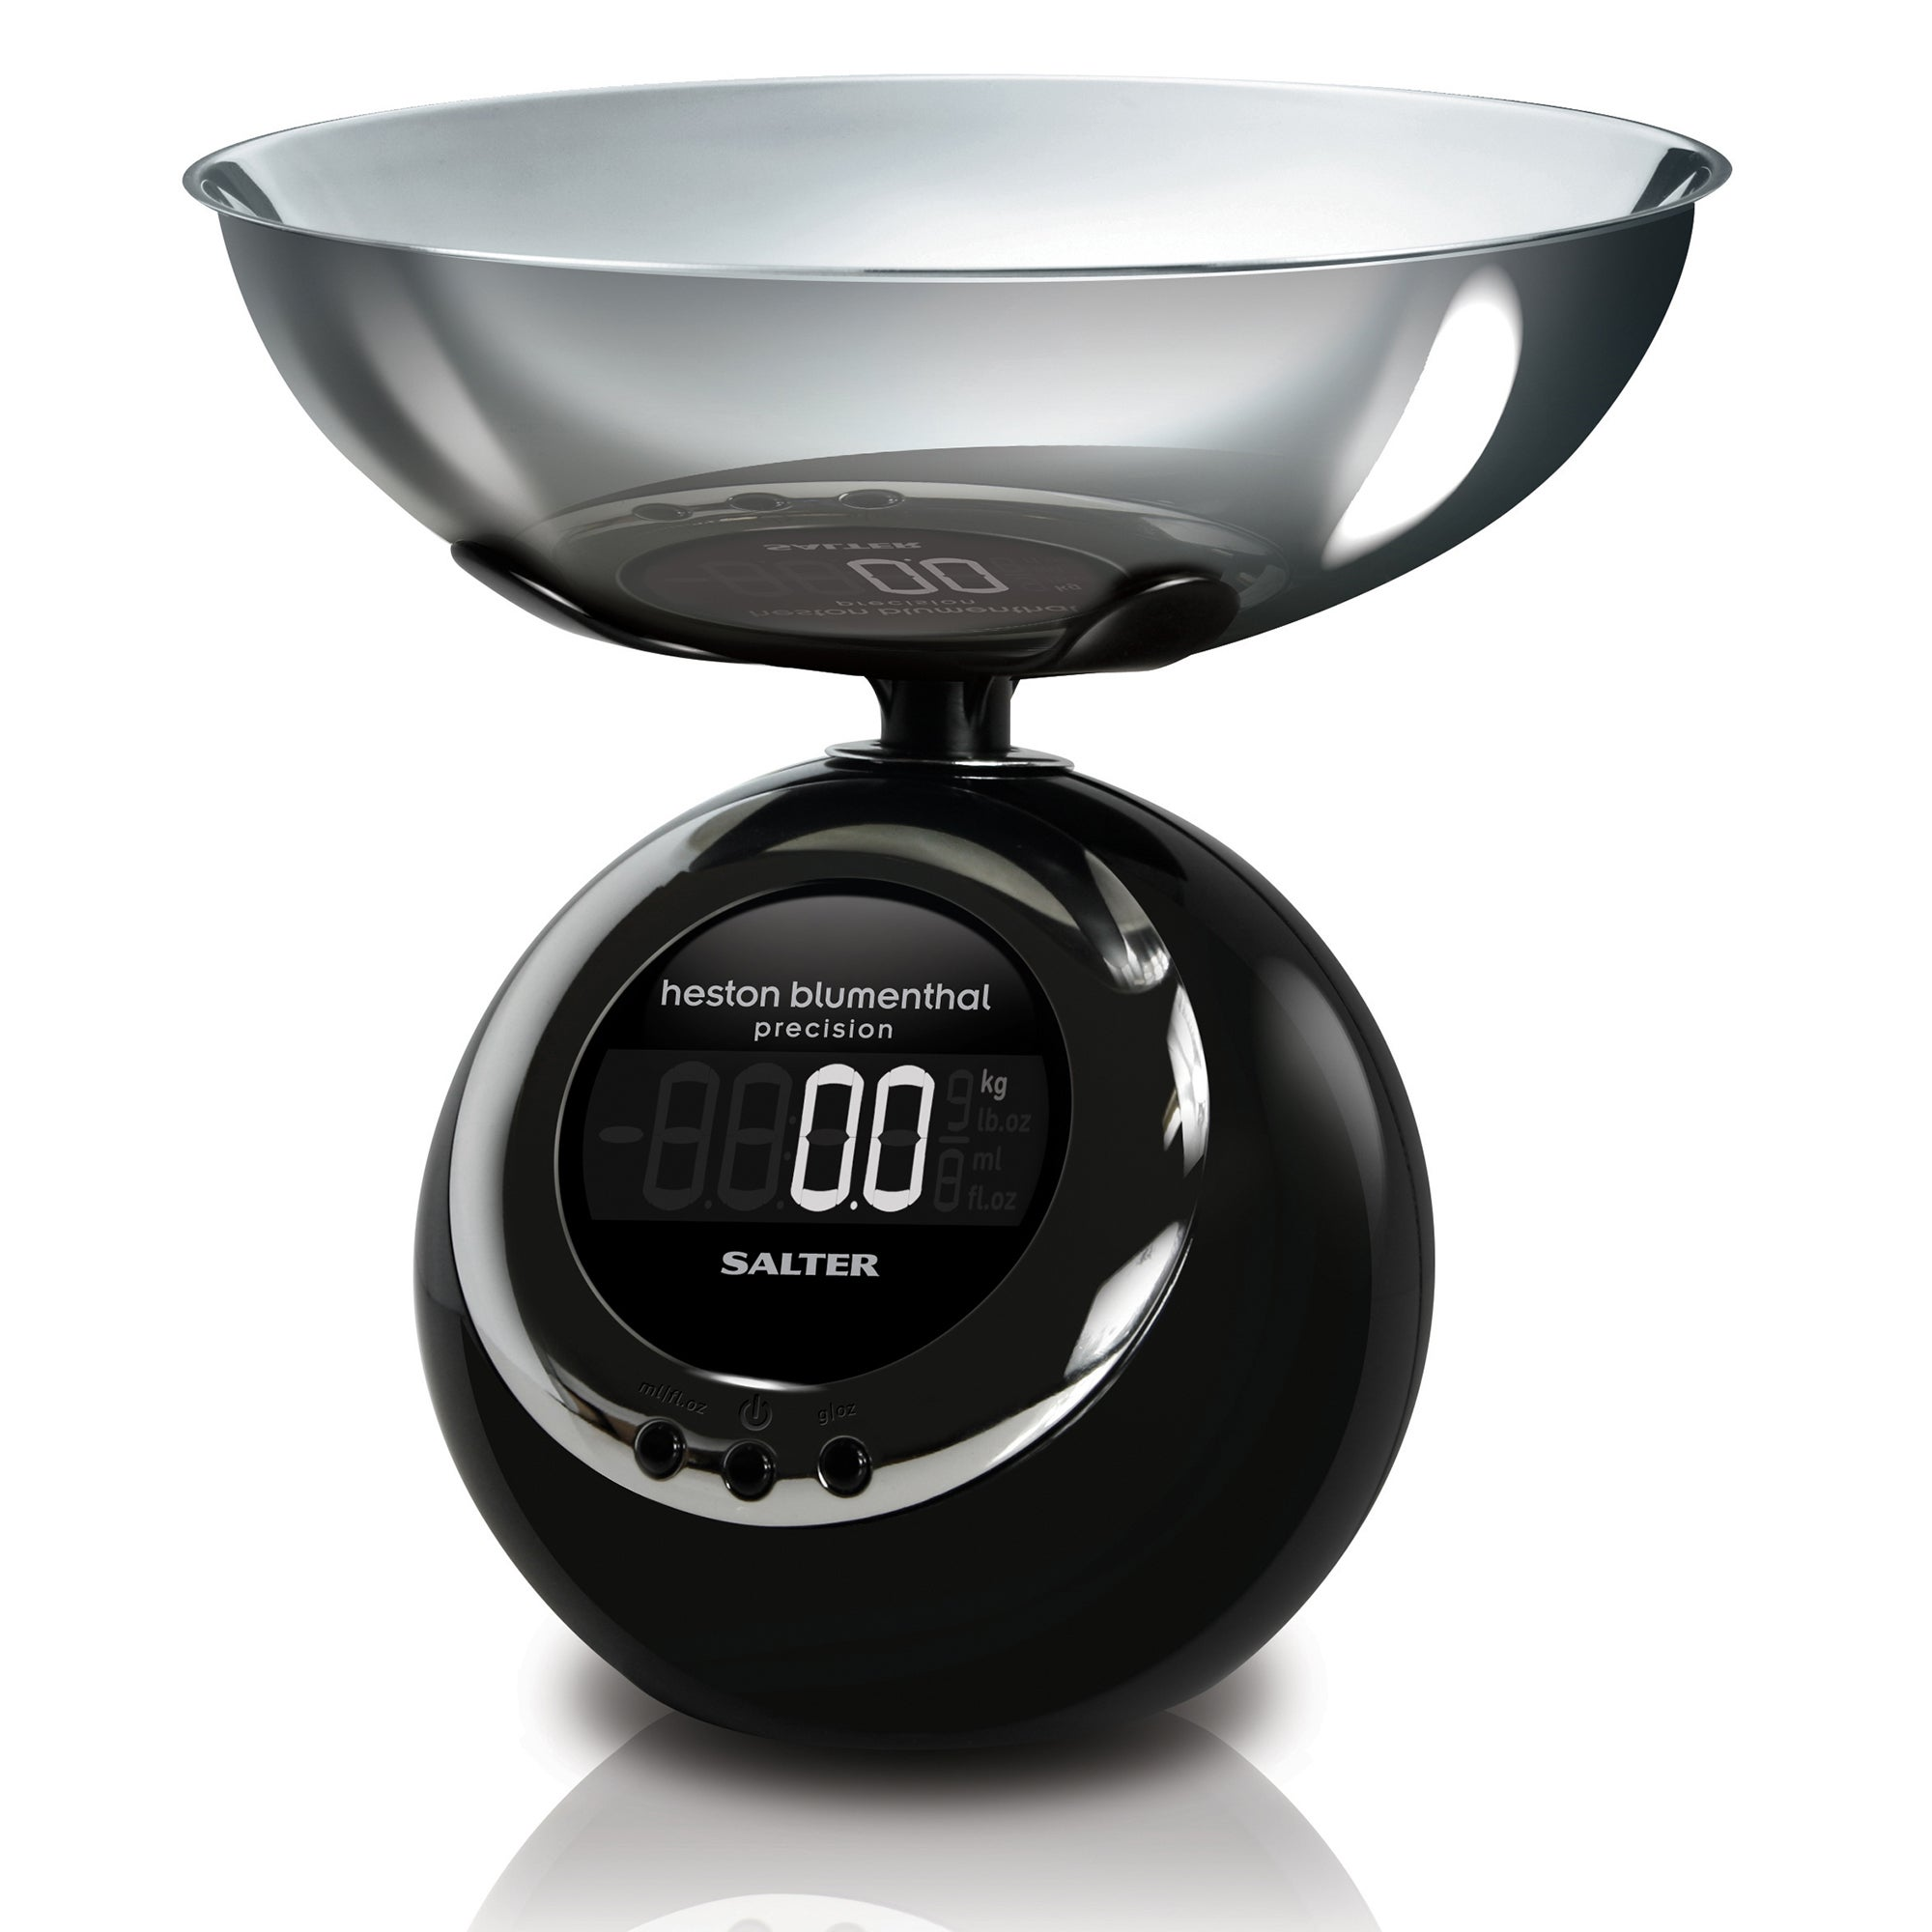 Heston Blumenthal Orb Electronic Scale